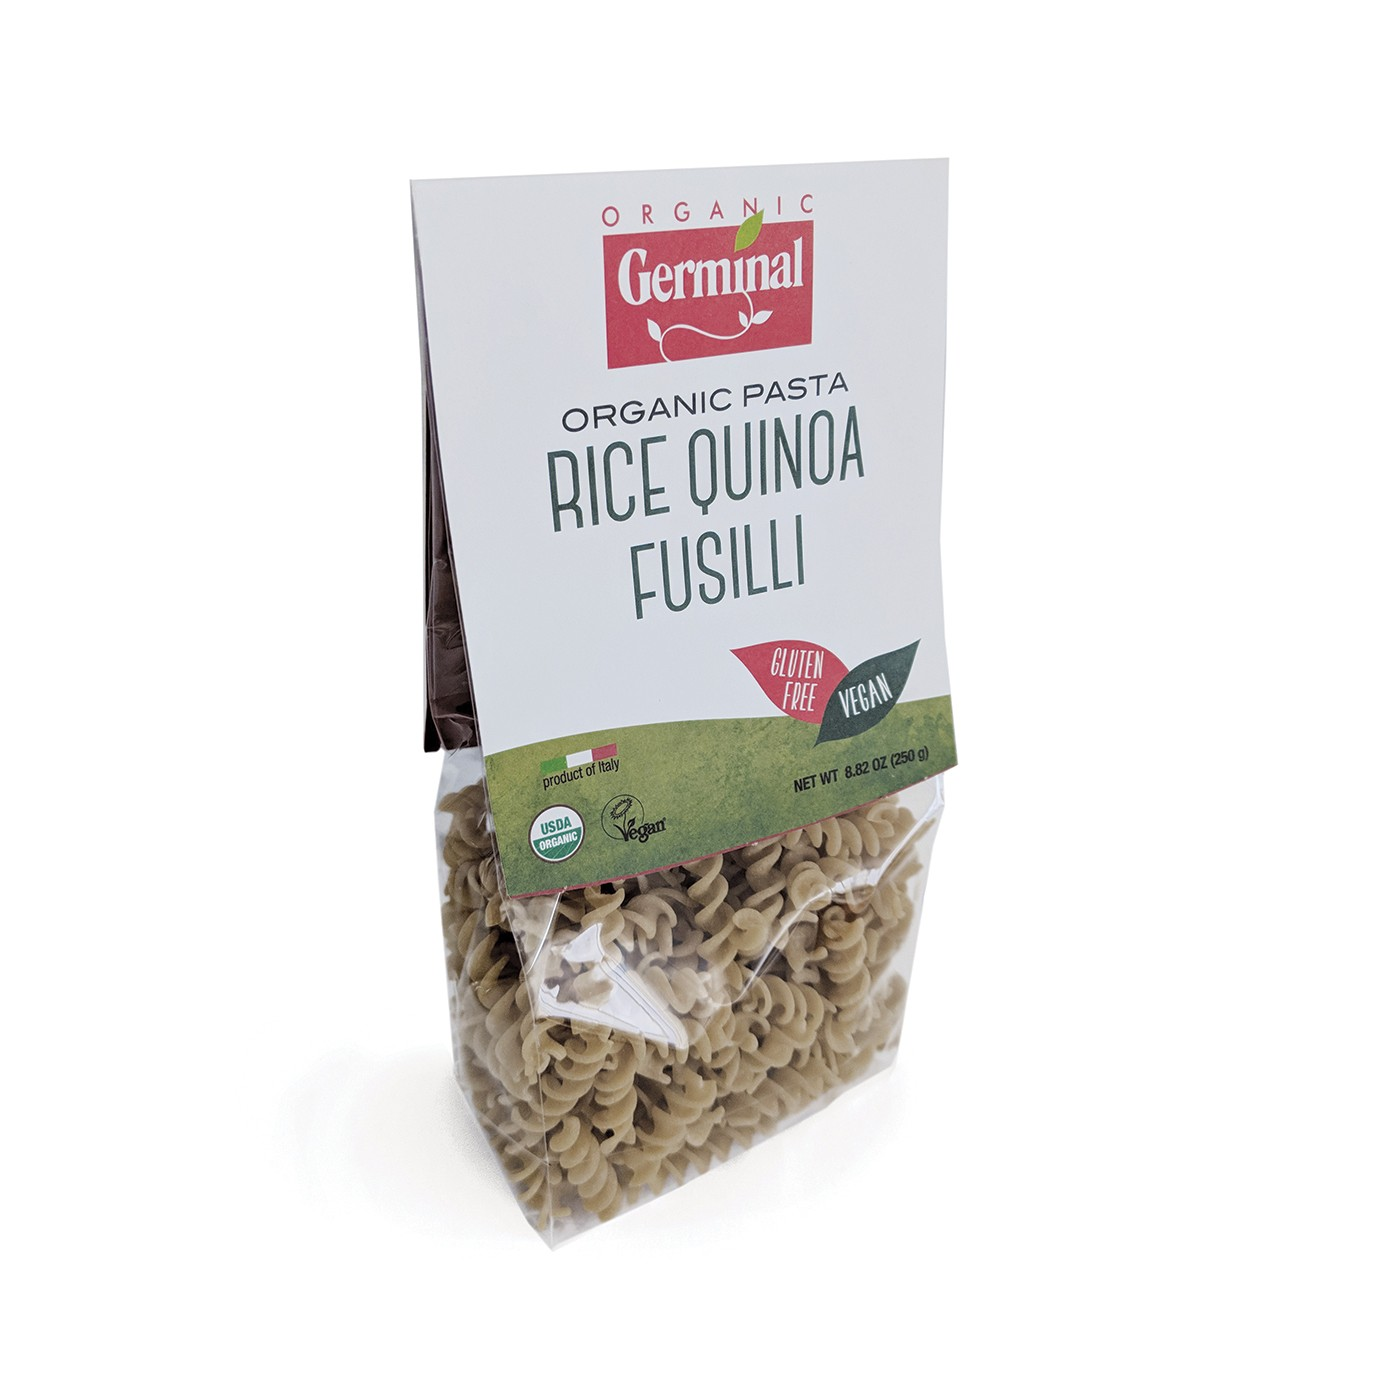 Rice & Quinoa Fusilli 8 oz